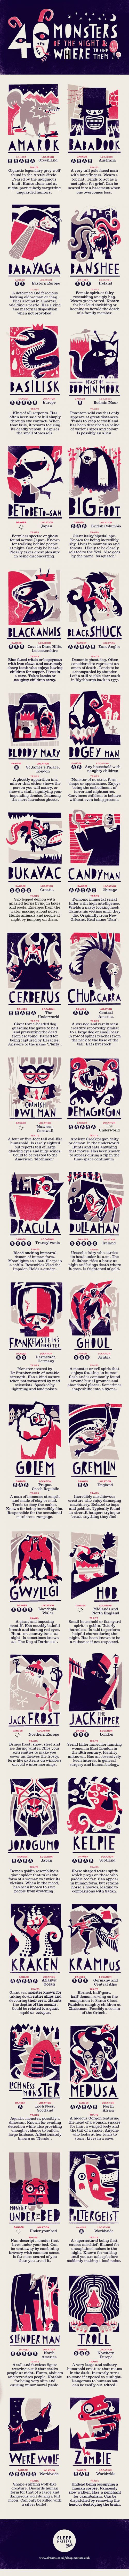 Infographic about 40 monsters from around the world and their history